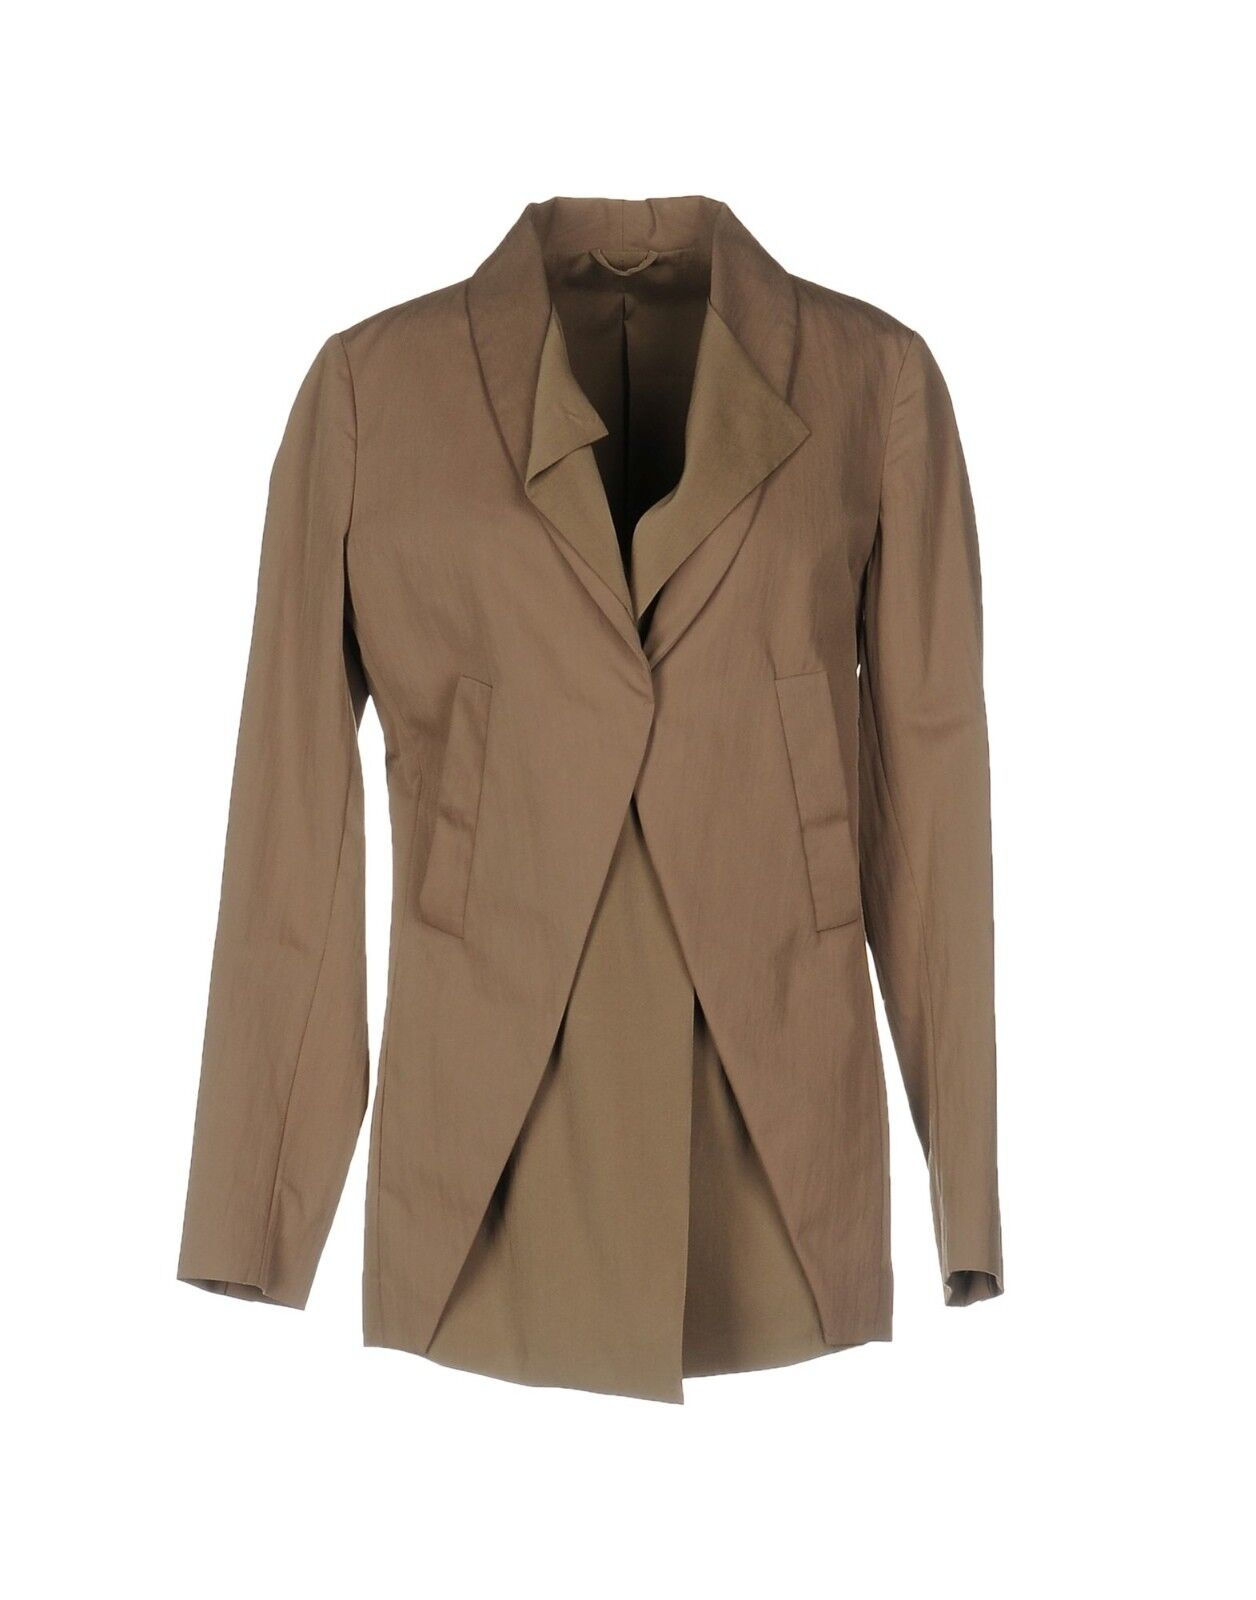 2650+NEW Brunello Cucinelli Marrón Taupe Chaqueta  Sz se 46 US 8-10  Más asequible